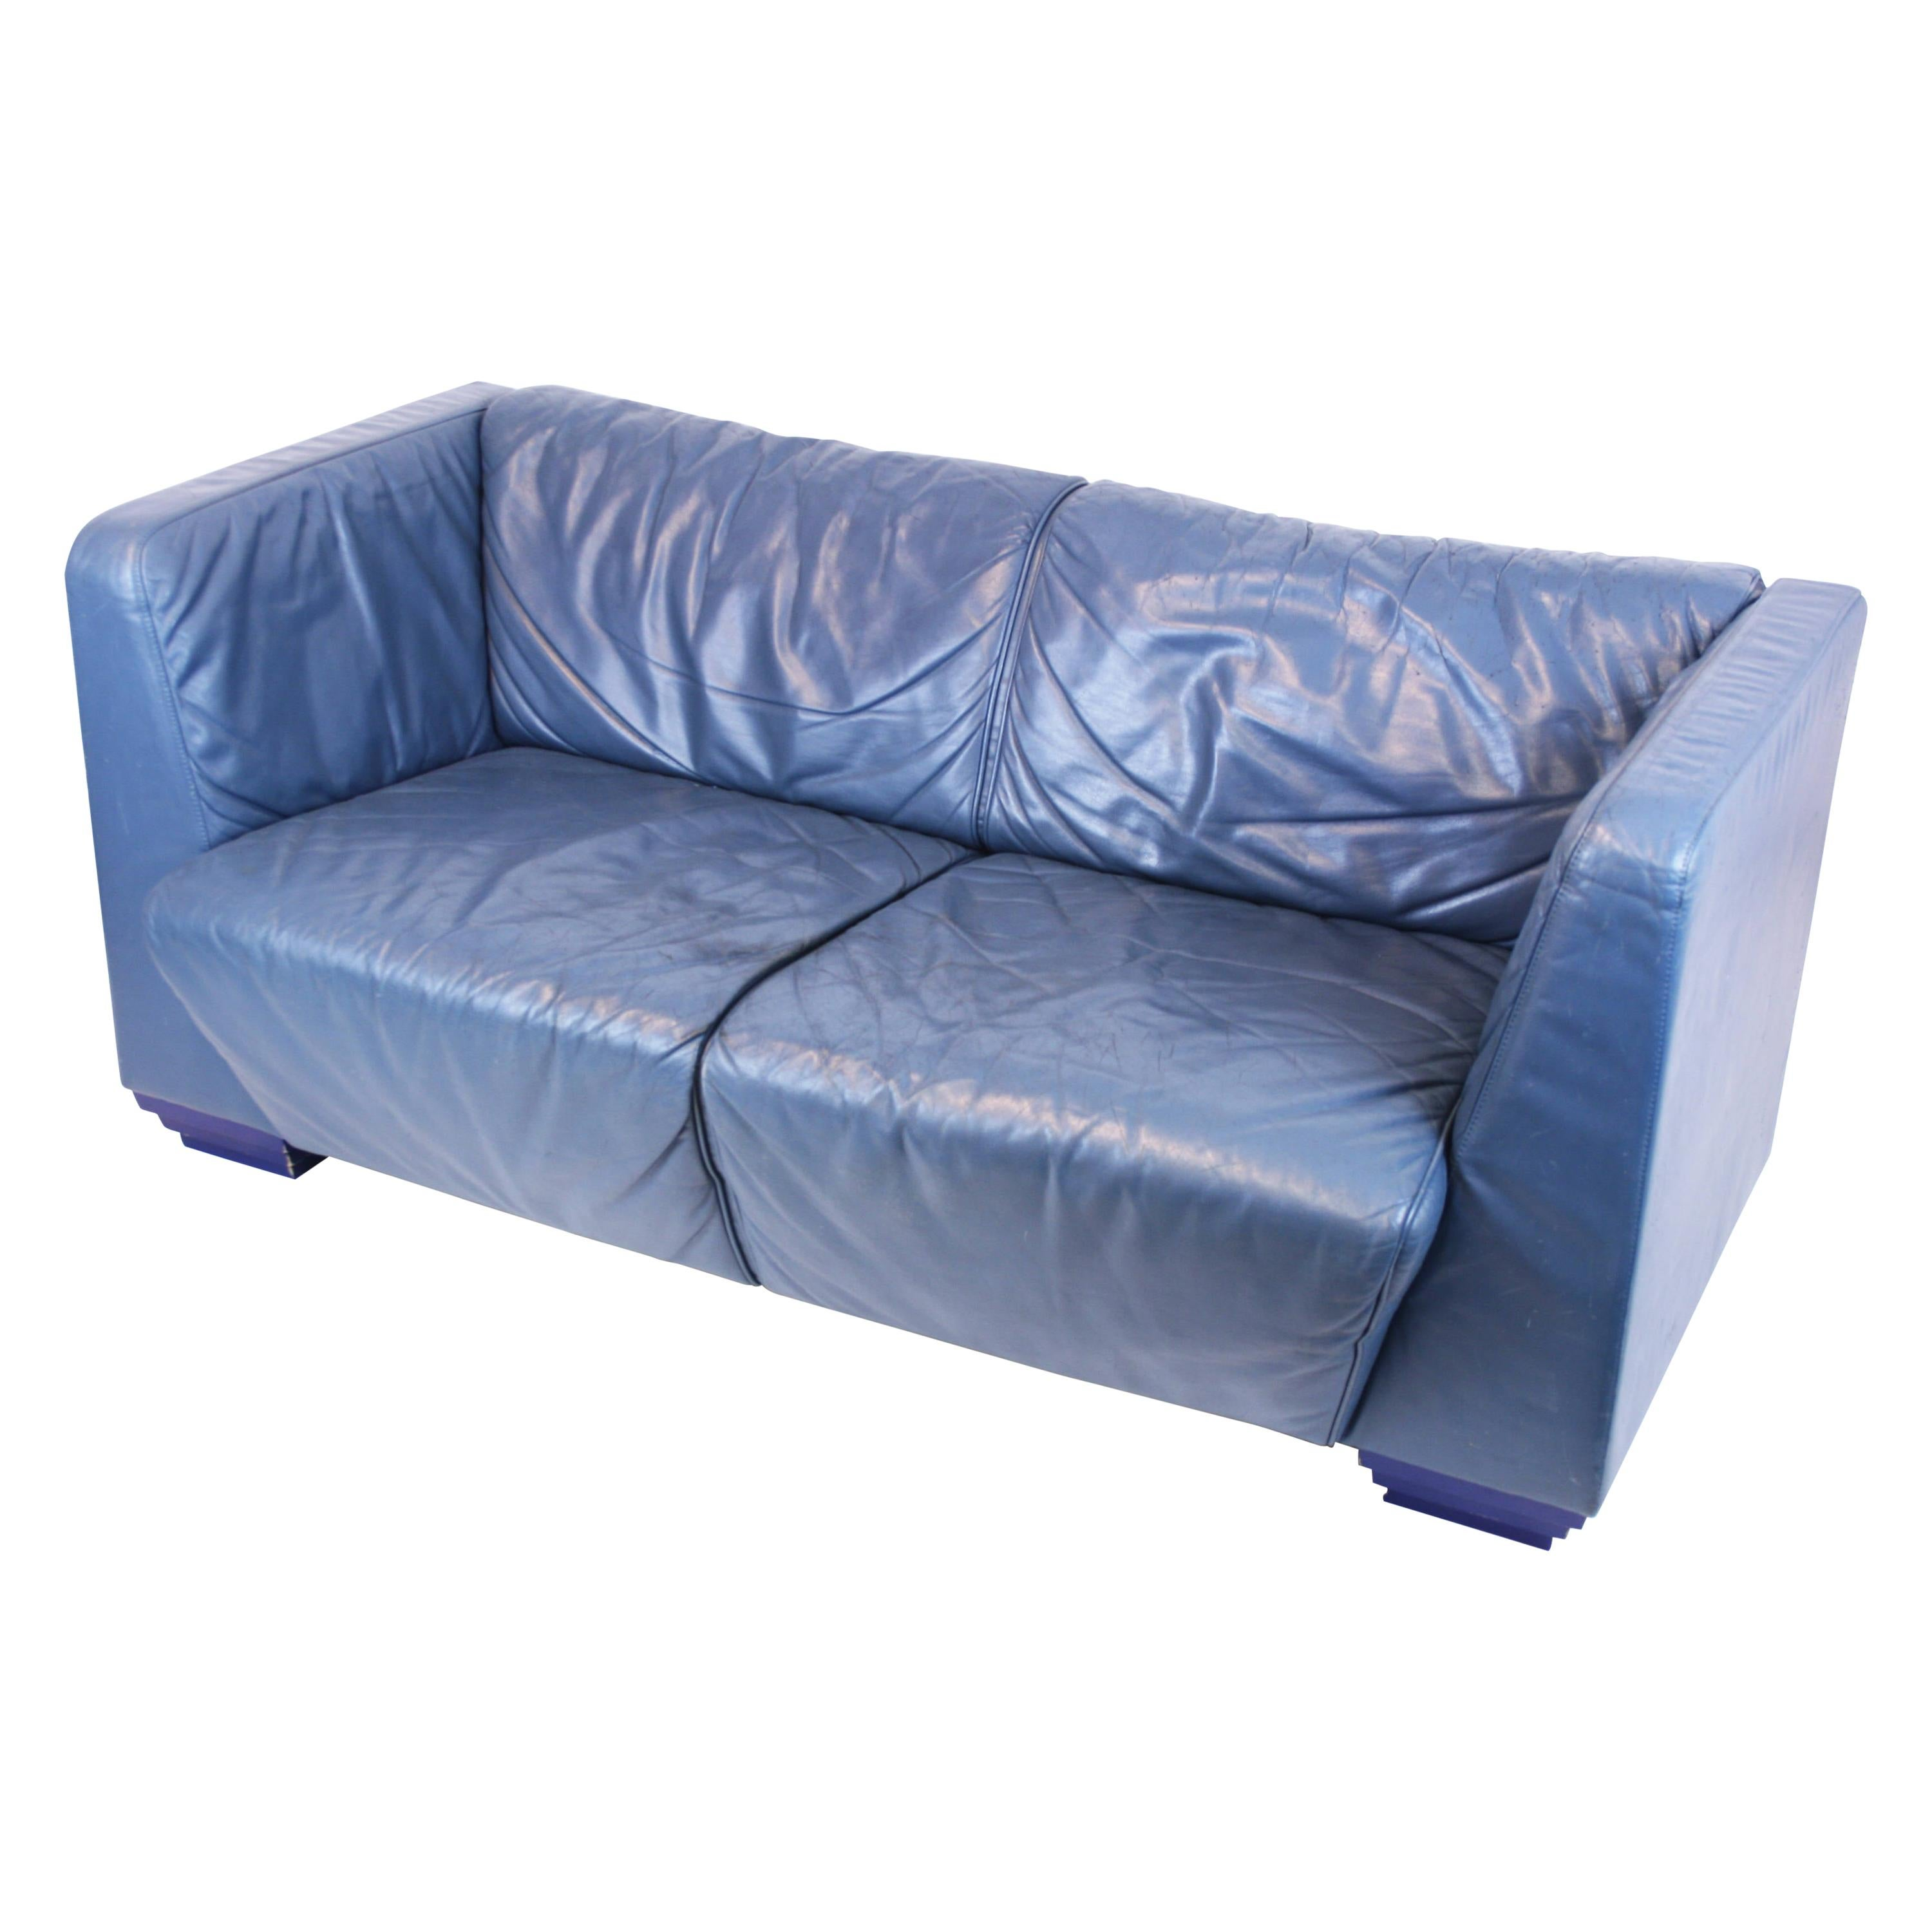 Sofa Geo by Wittmann by Jorgen Kastholm Leather Seating Collectors Item Austria